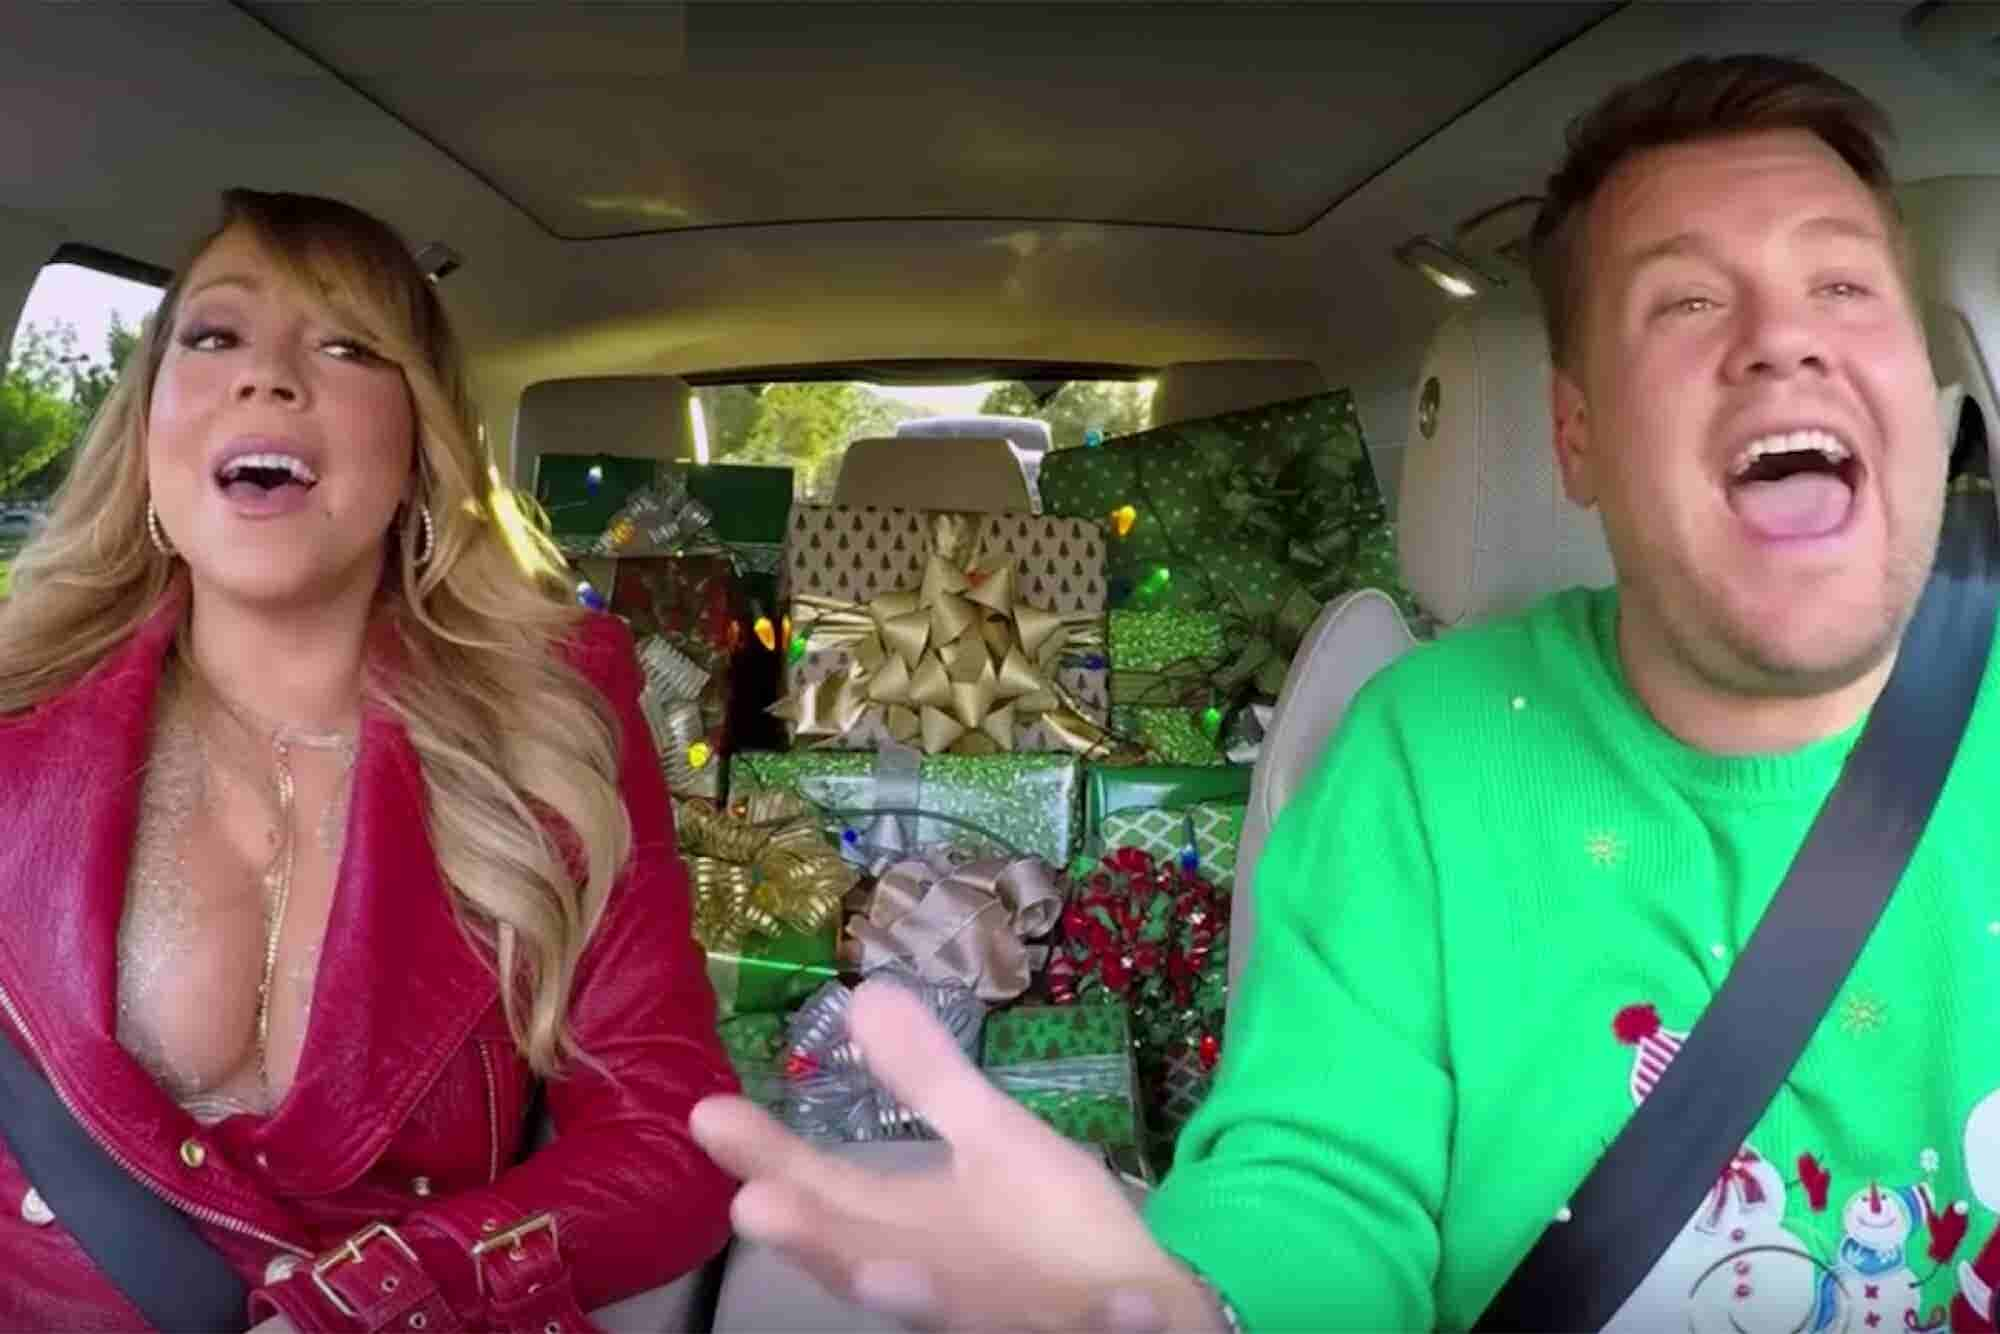 Watch Who Shows Up on 'All I Want For Christmas' All-Star Carpool Karoake